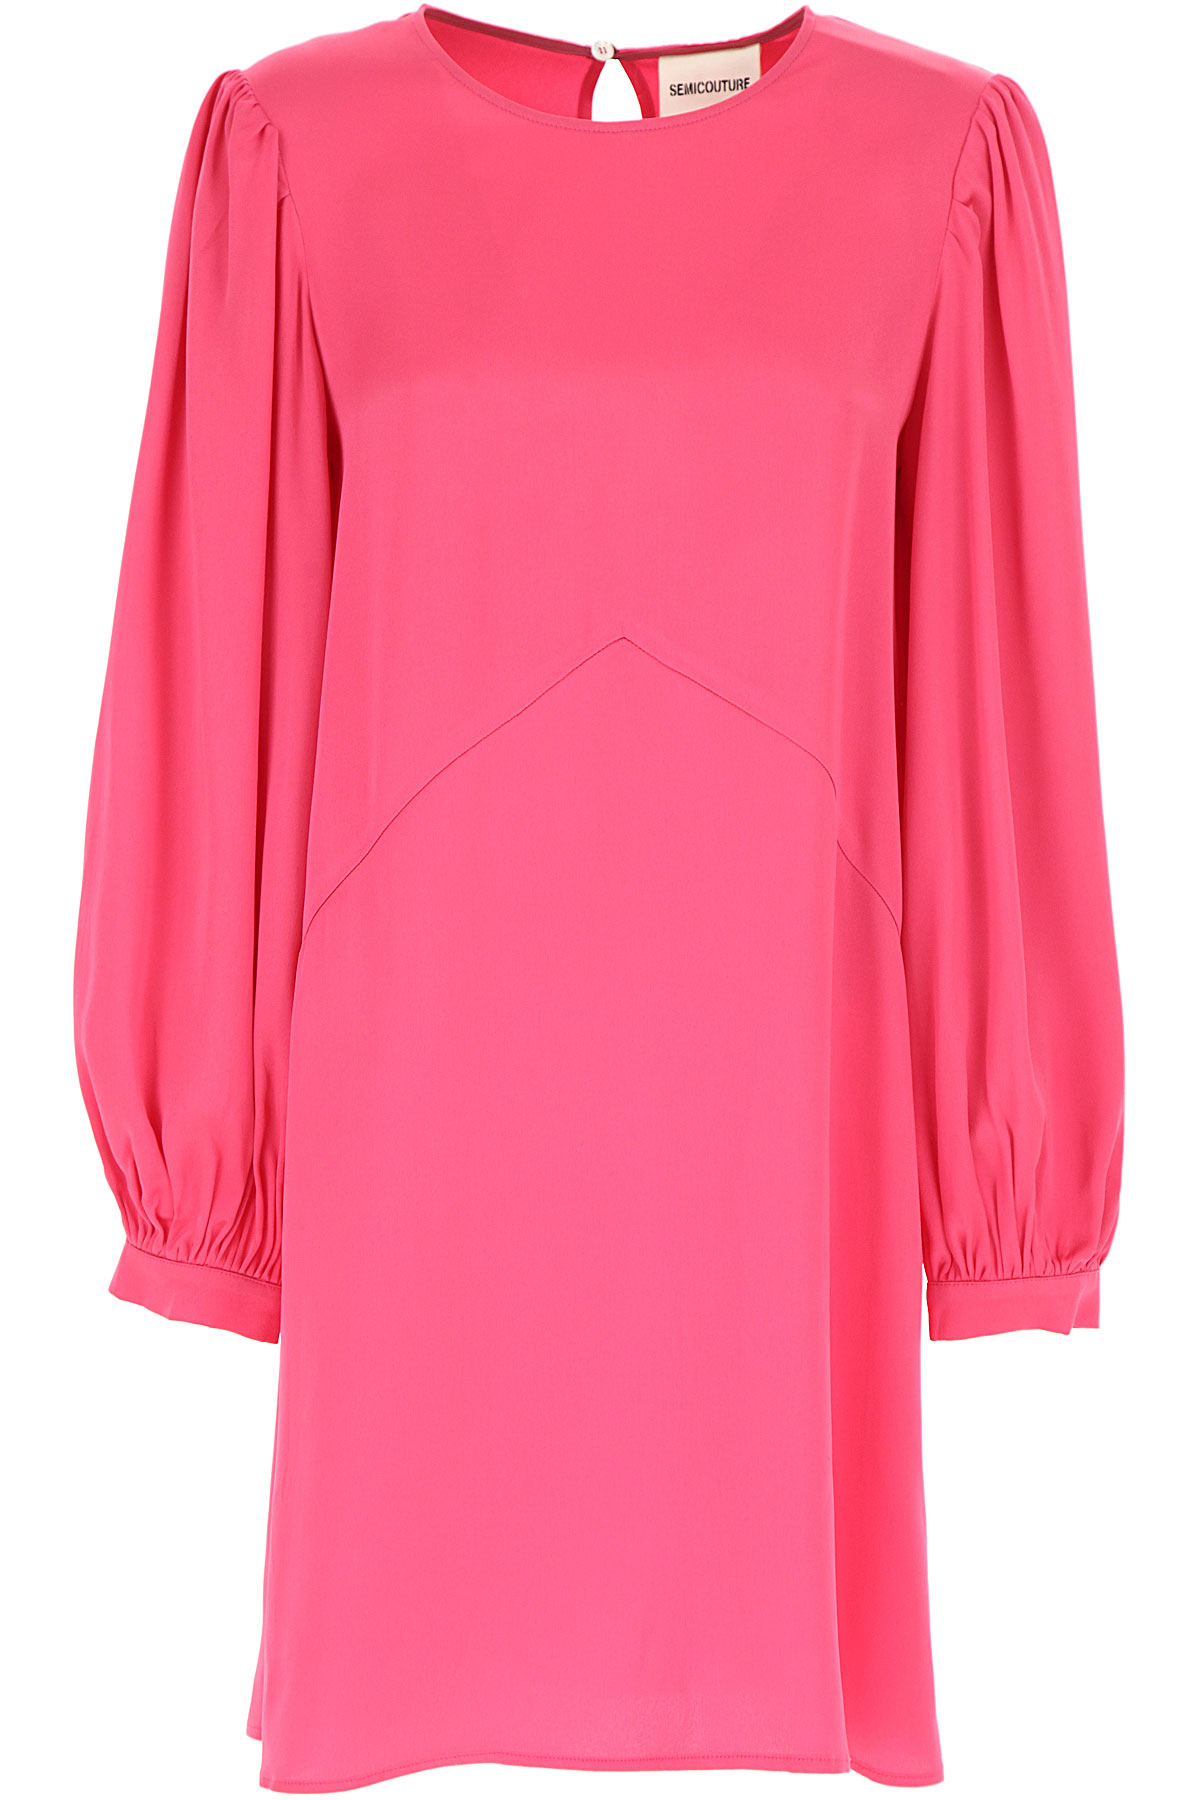 Semicouture Dress for Women, Evening Cocktail Party On Sale, Magenta, acetate, 2019, 4 8